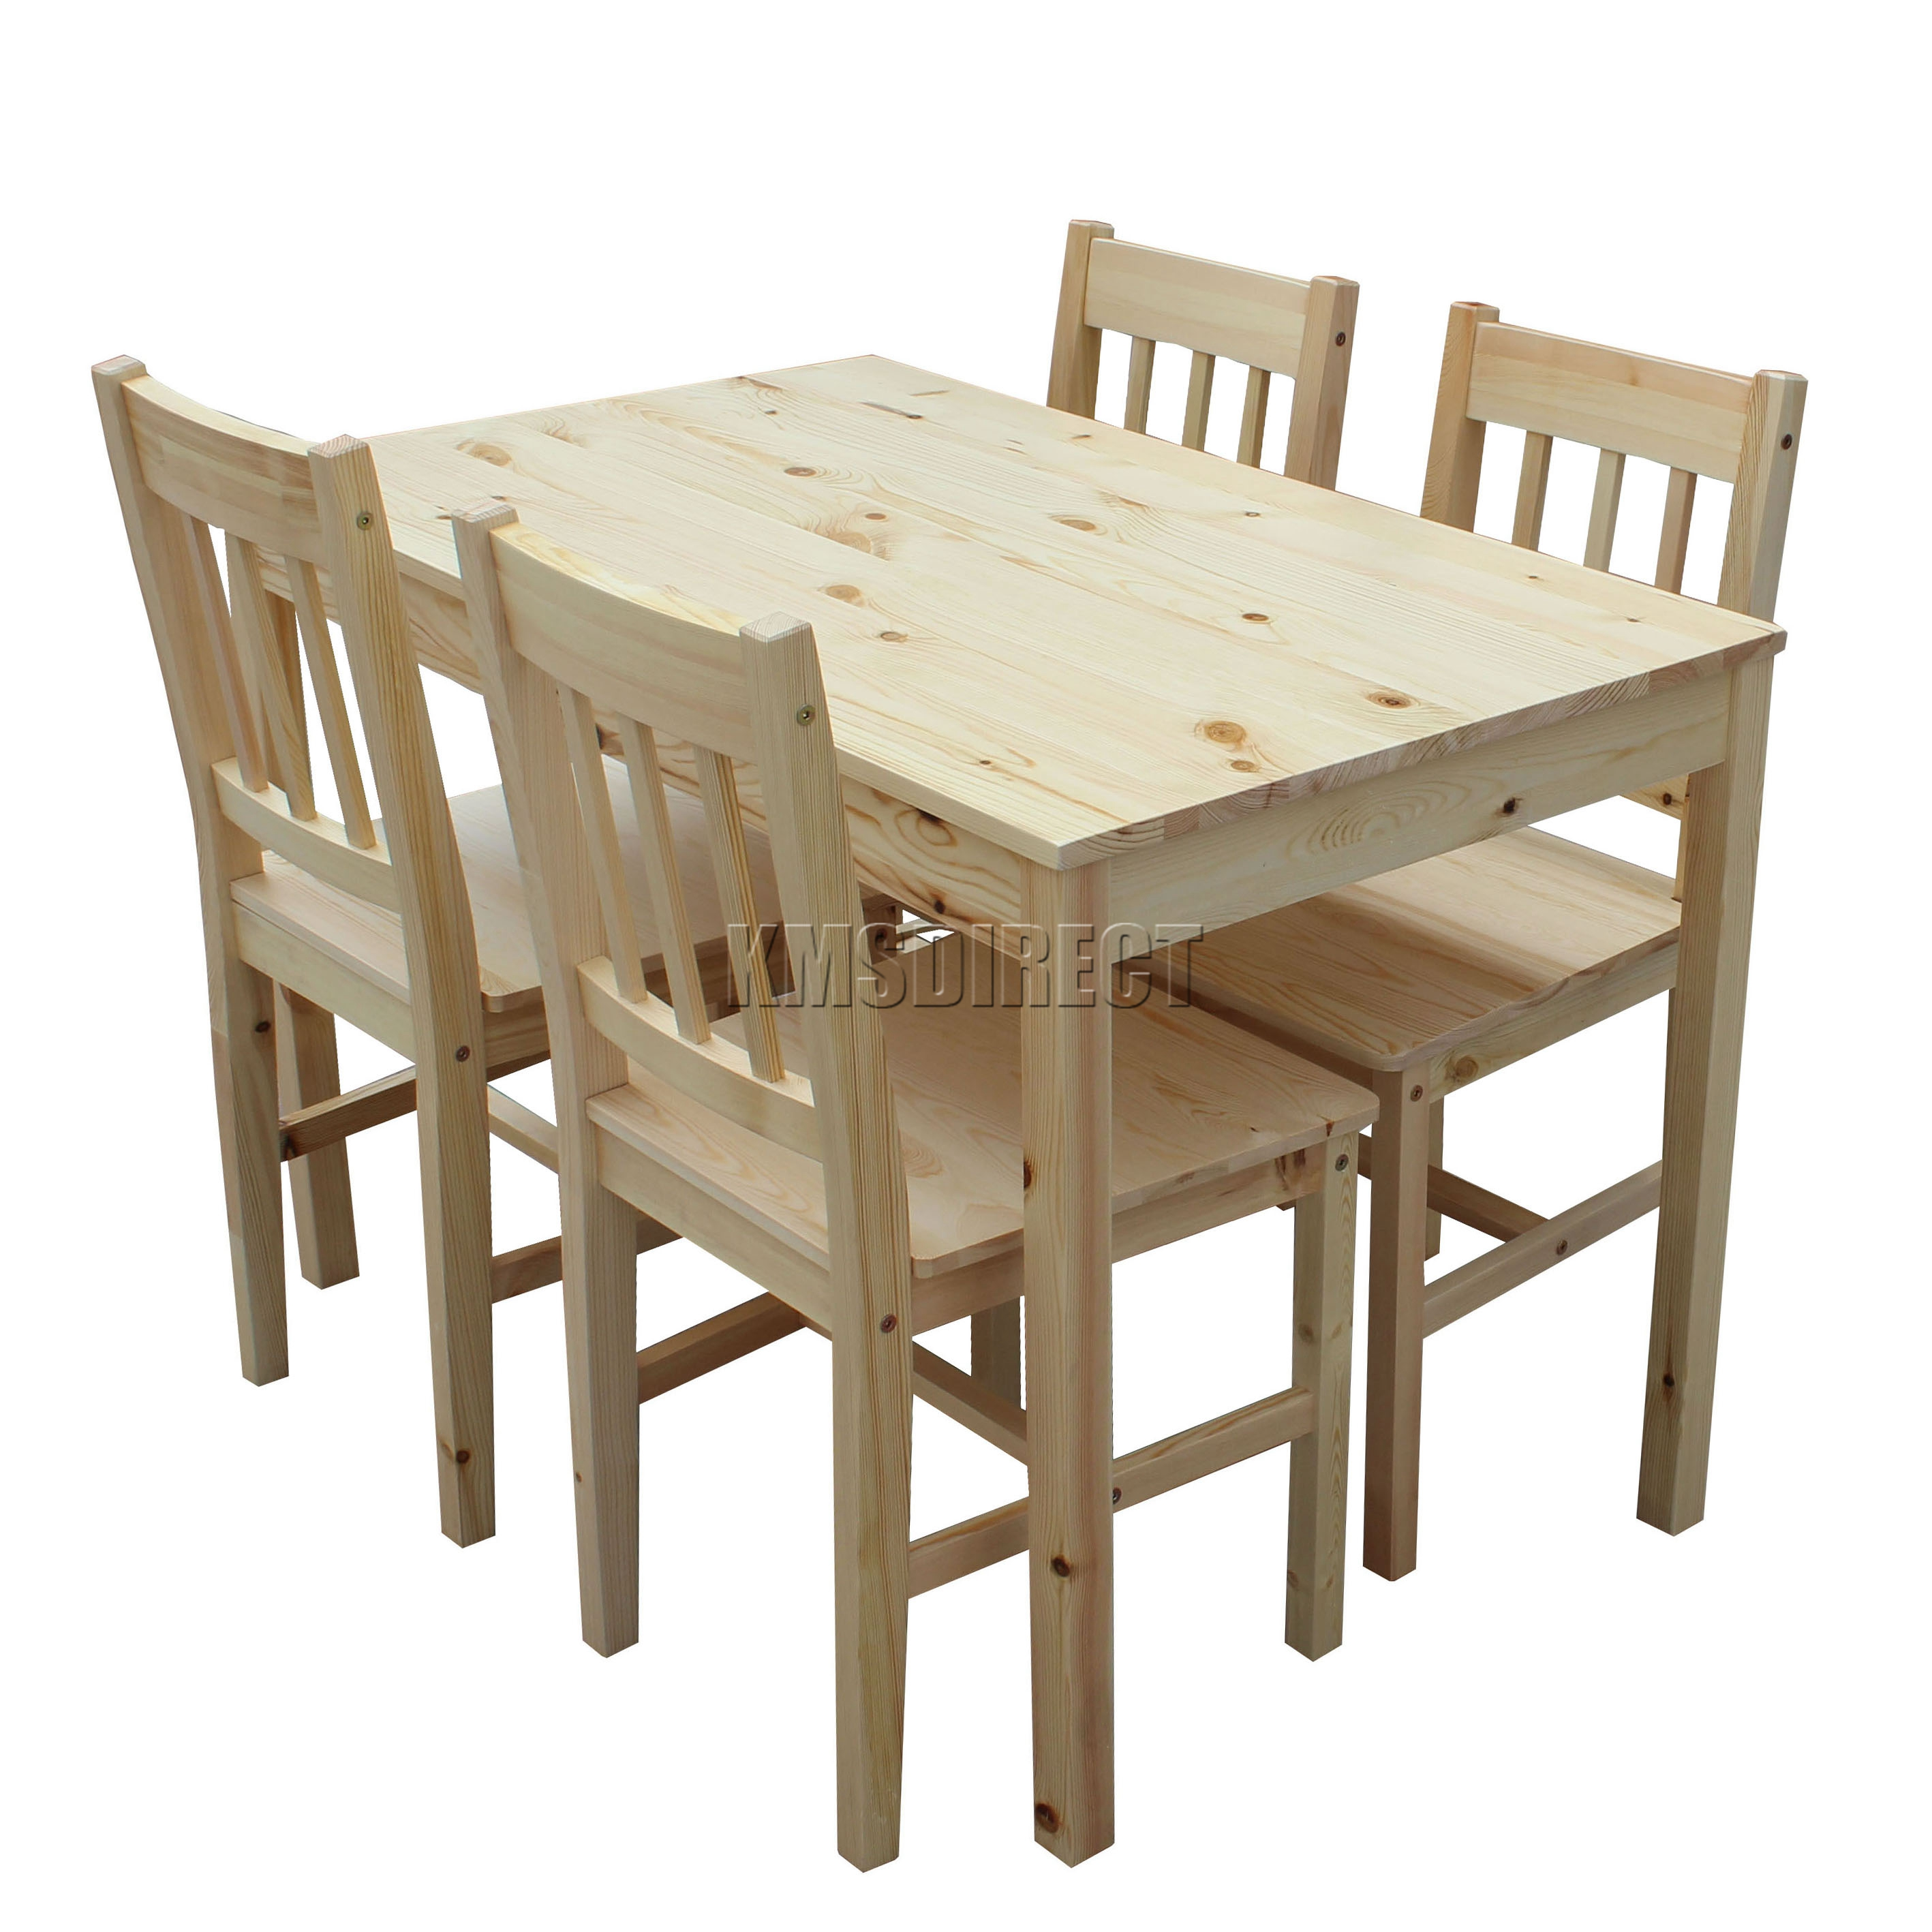 FoxHunter Quality Solid Wooden Dining Table And 4 Chairs Set Kitchen DS02 Pin